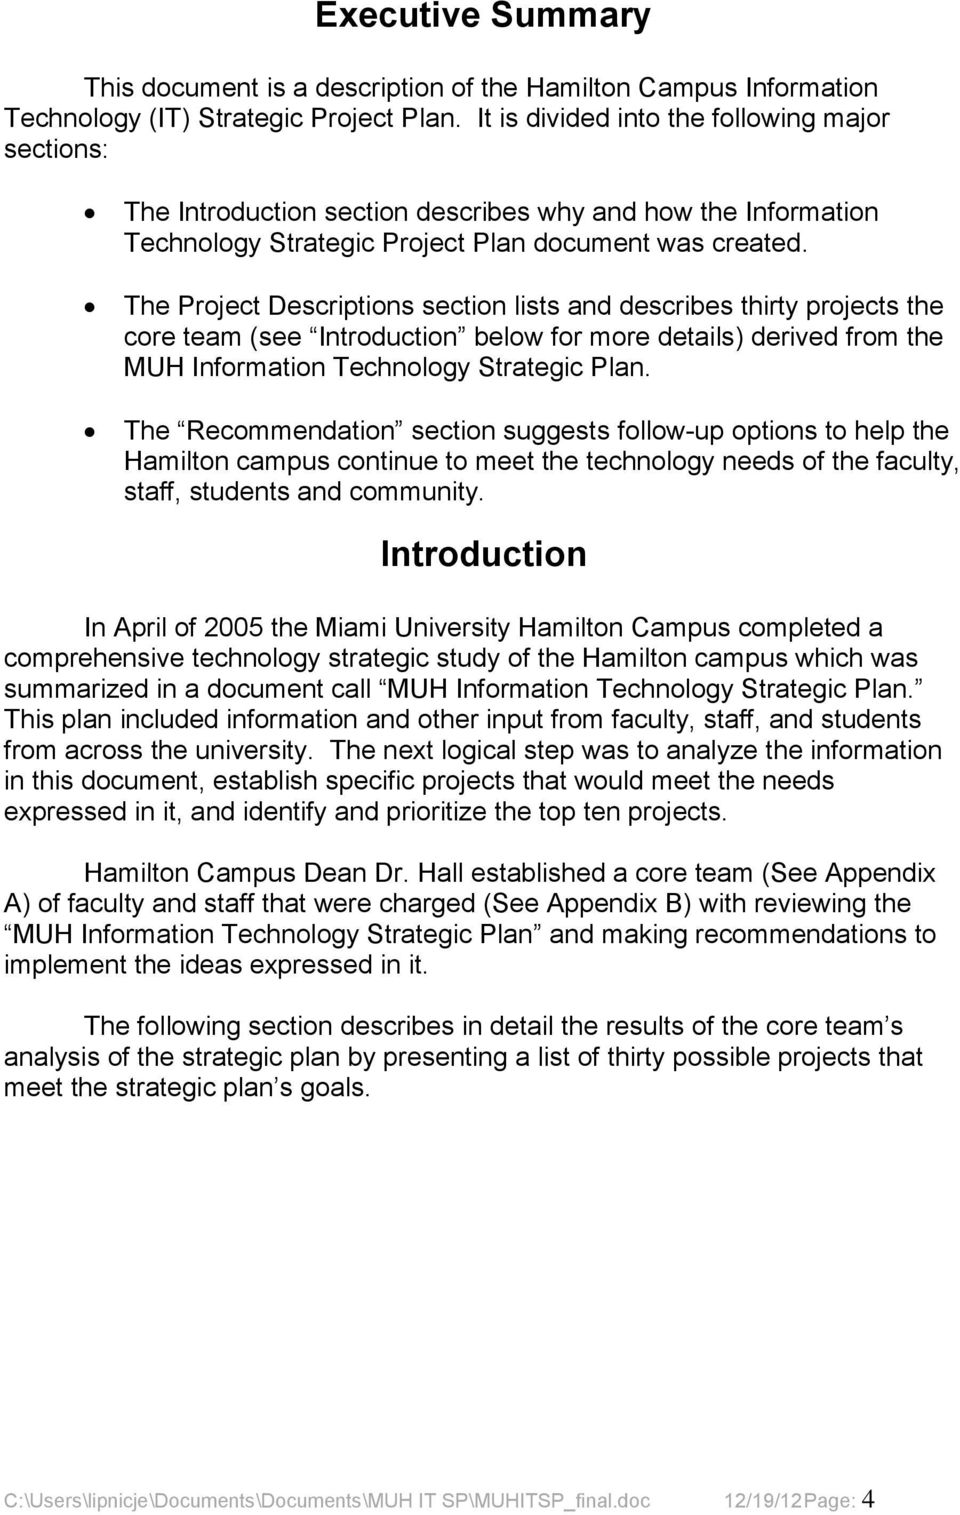 The Project Descriptions section lists and describes thirty projects the core team (see Introduction below for more details) derived from the MUH Information Technology Strategic Plan.